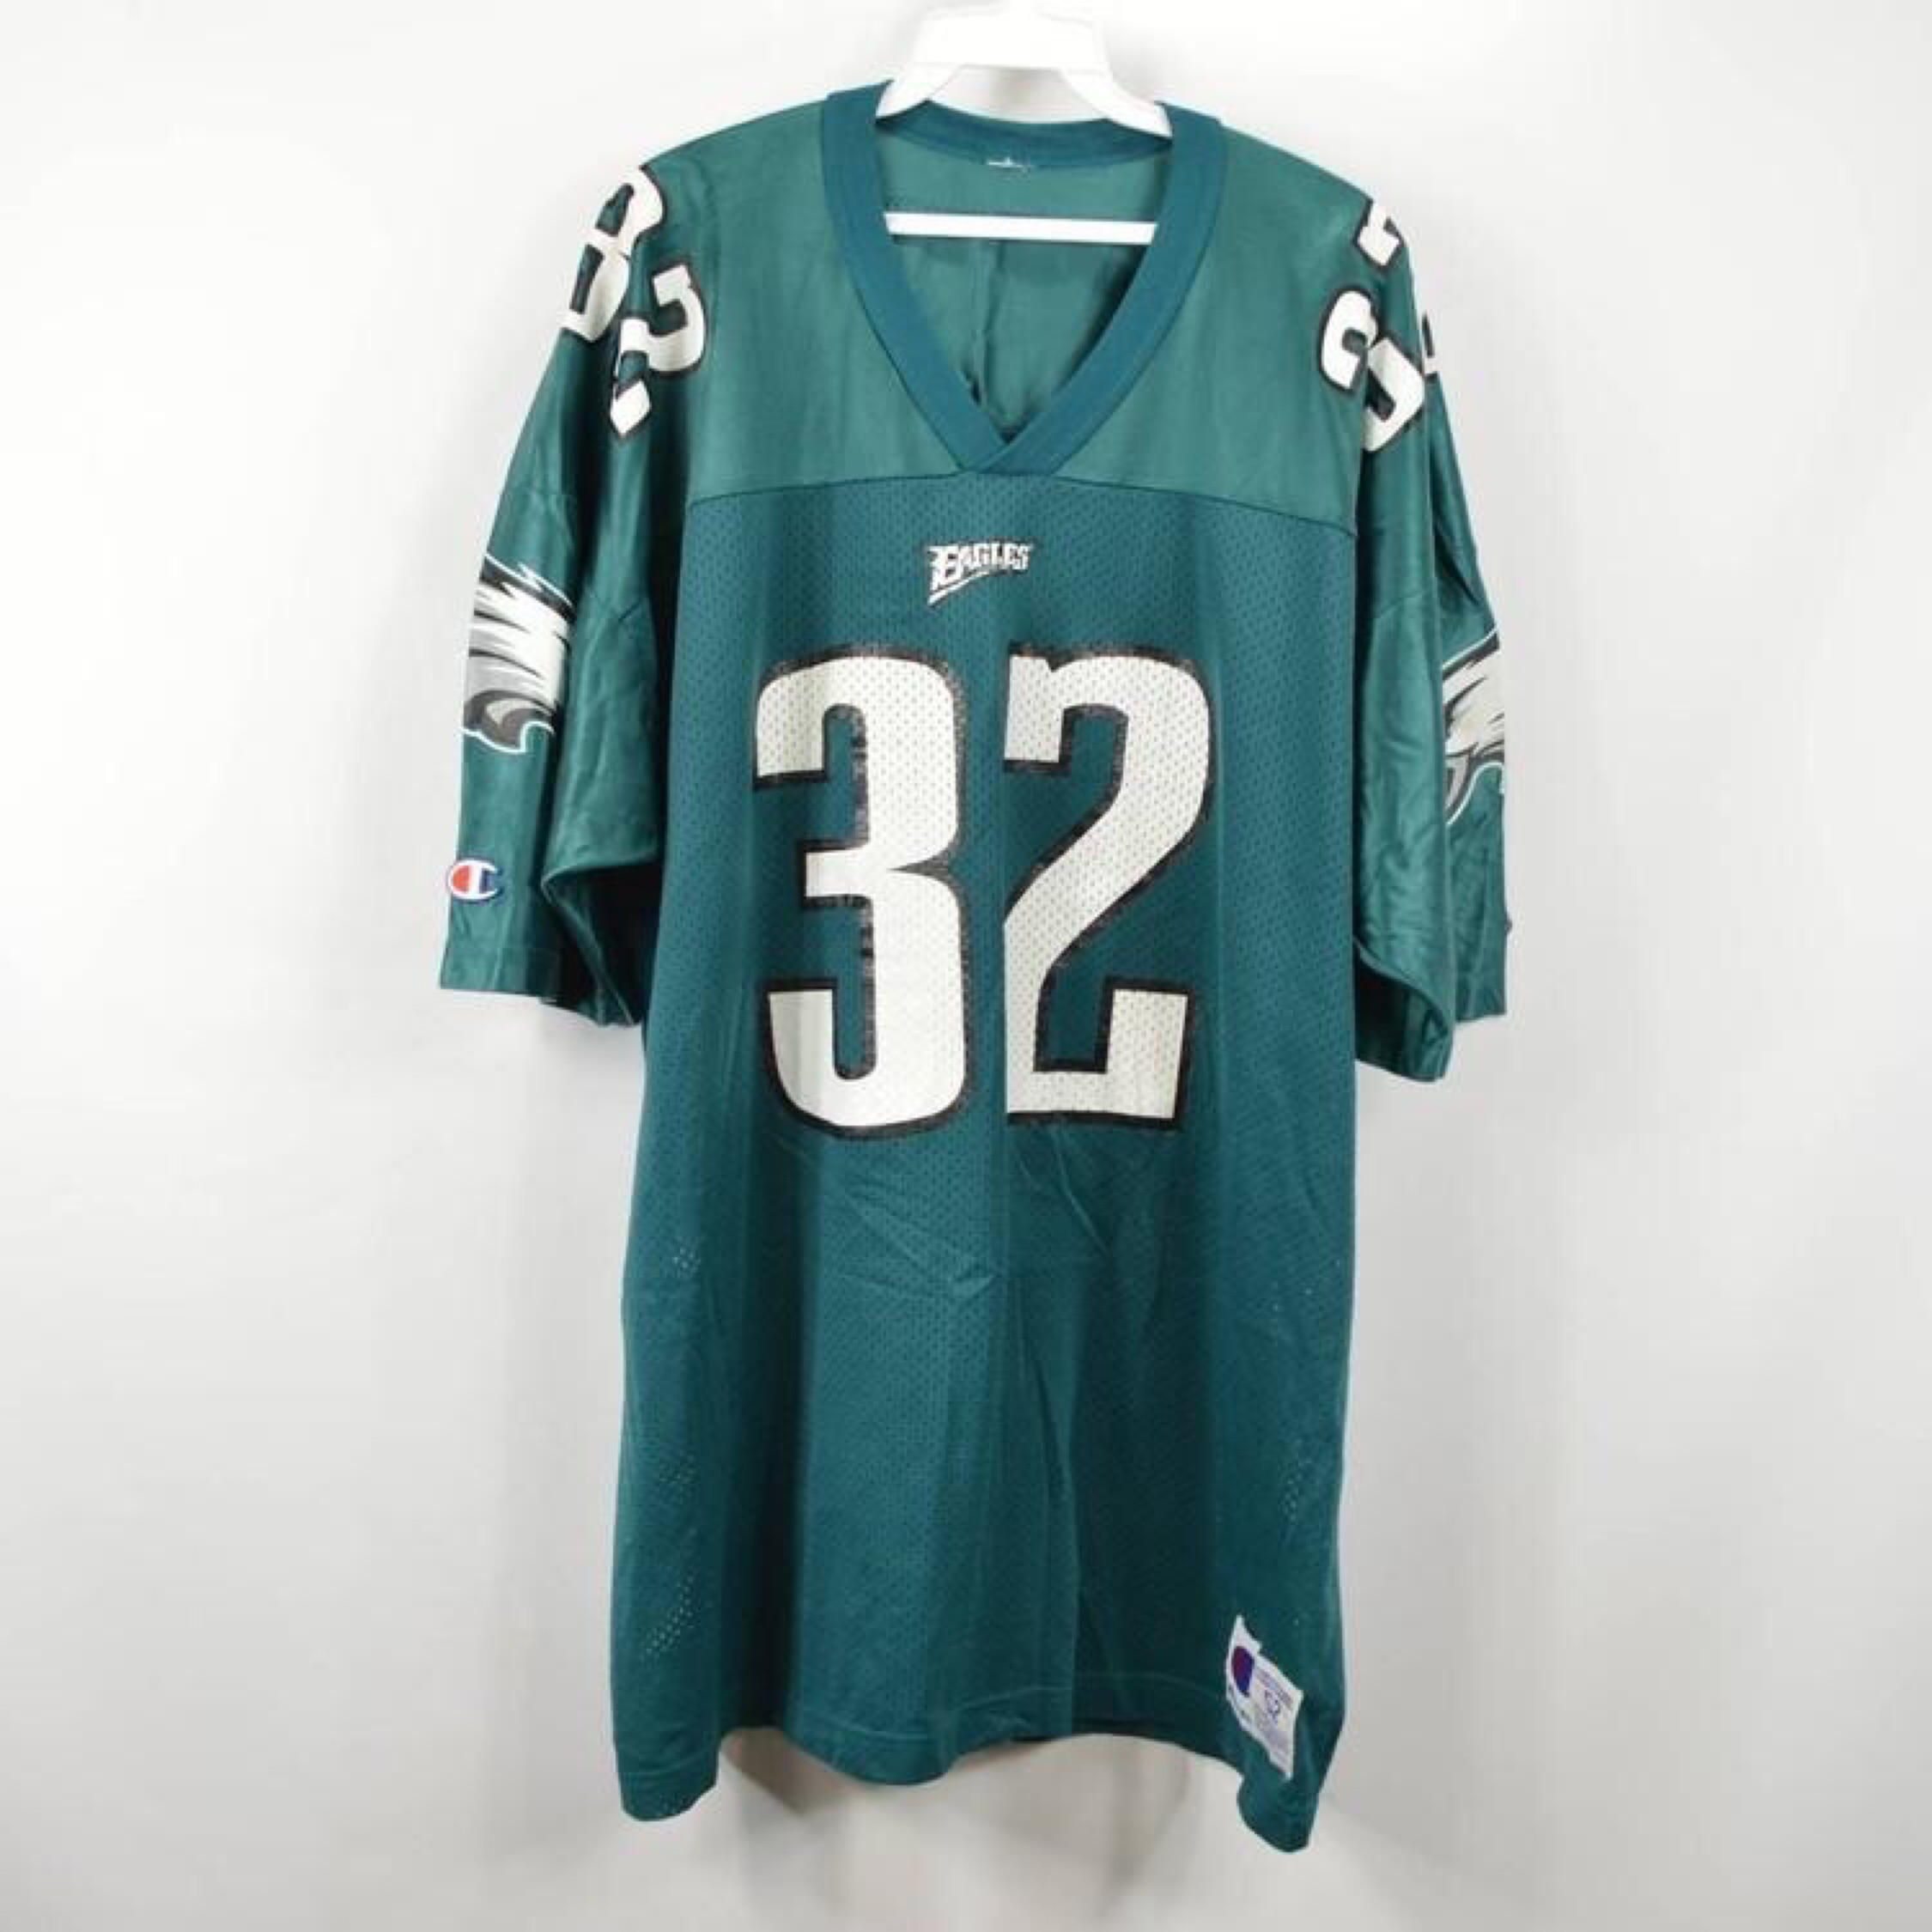 Vintage Champion Eagles Jersey  xT8iAHCH